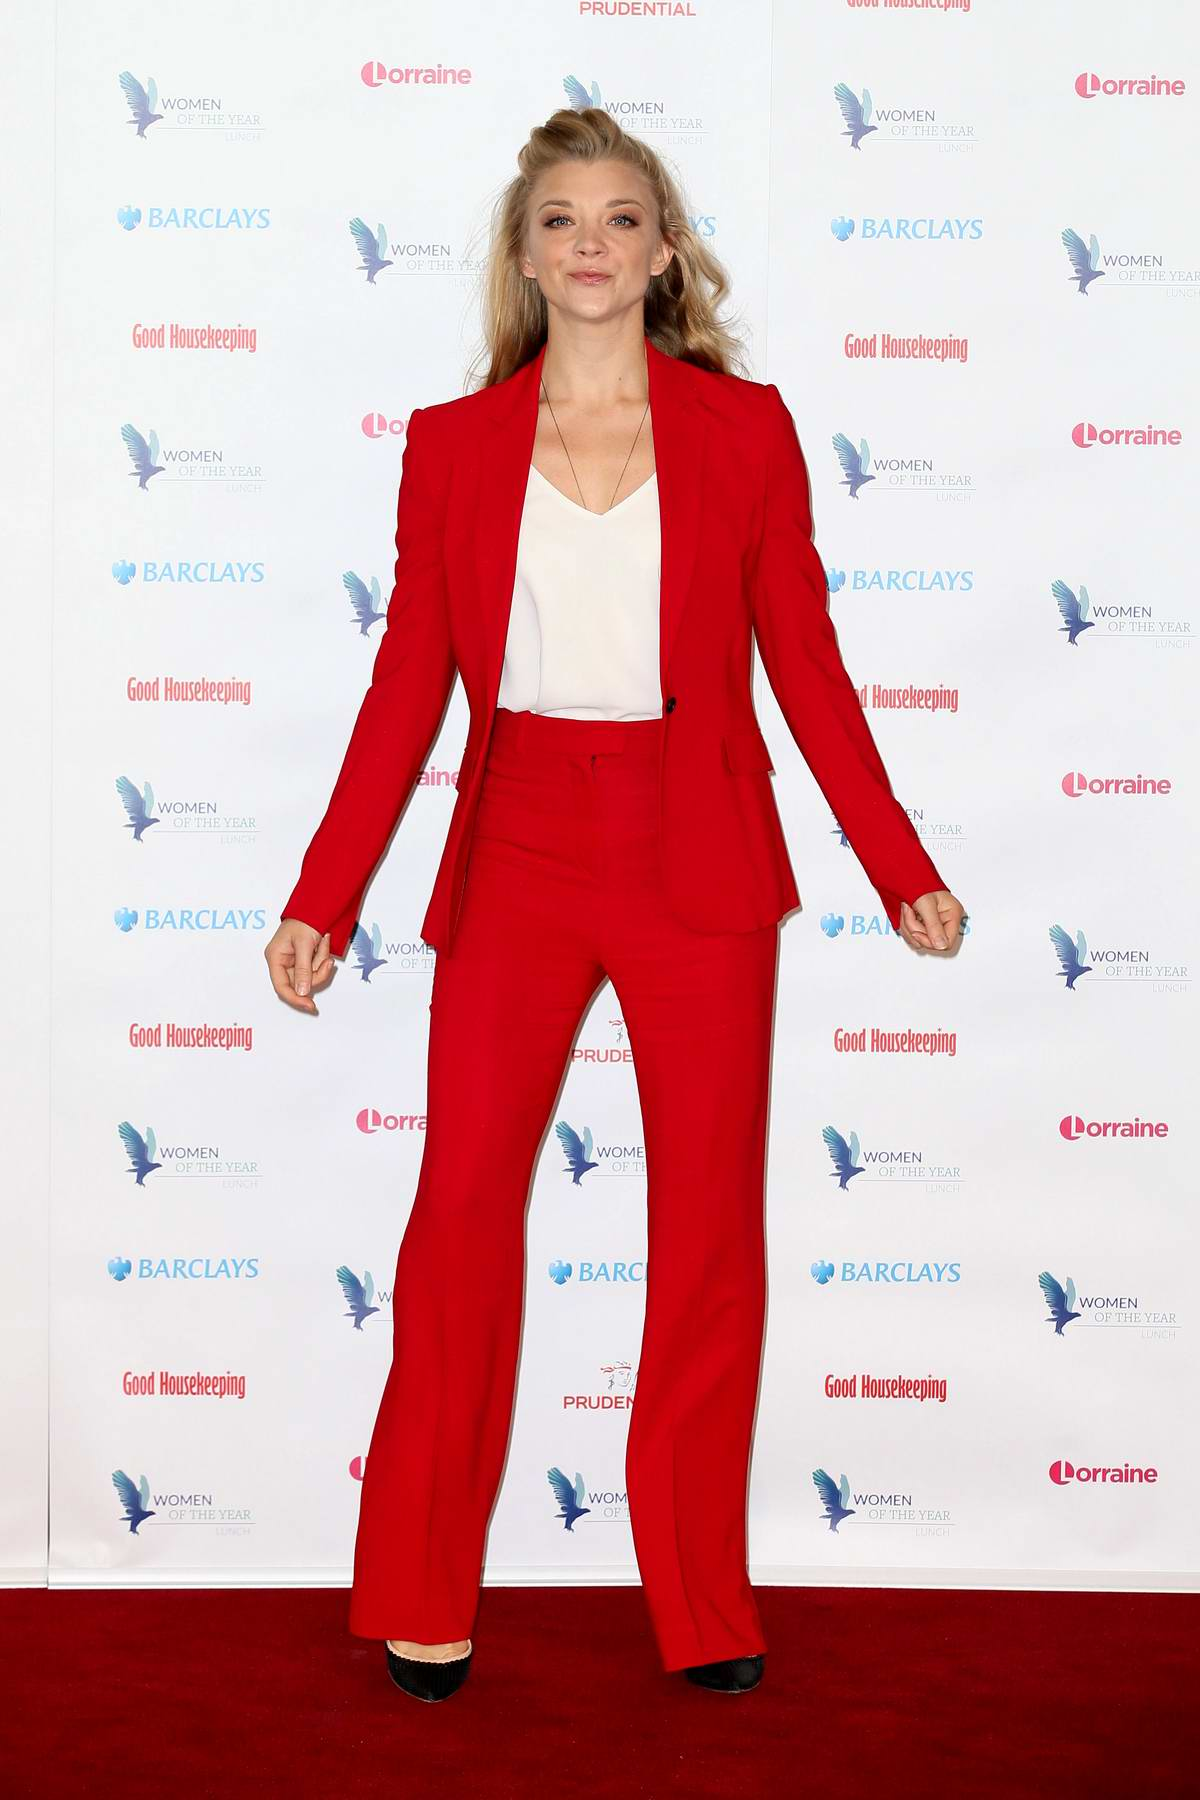 Natalie Dormer wears a red pantsuit at Women of the Year launch in London